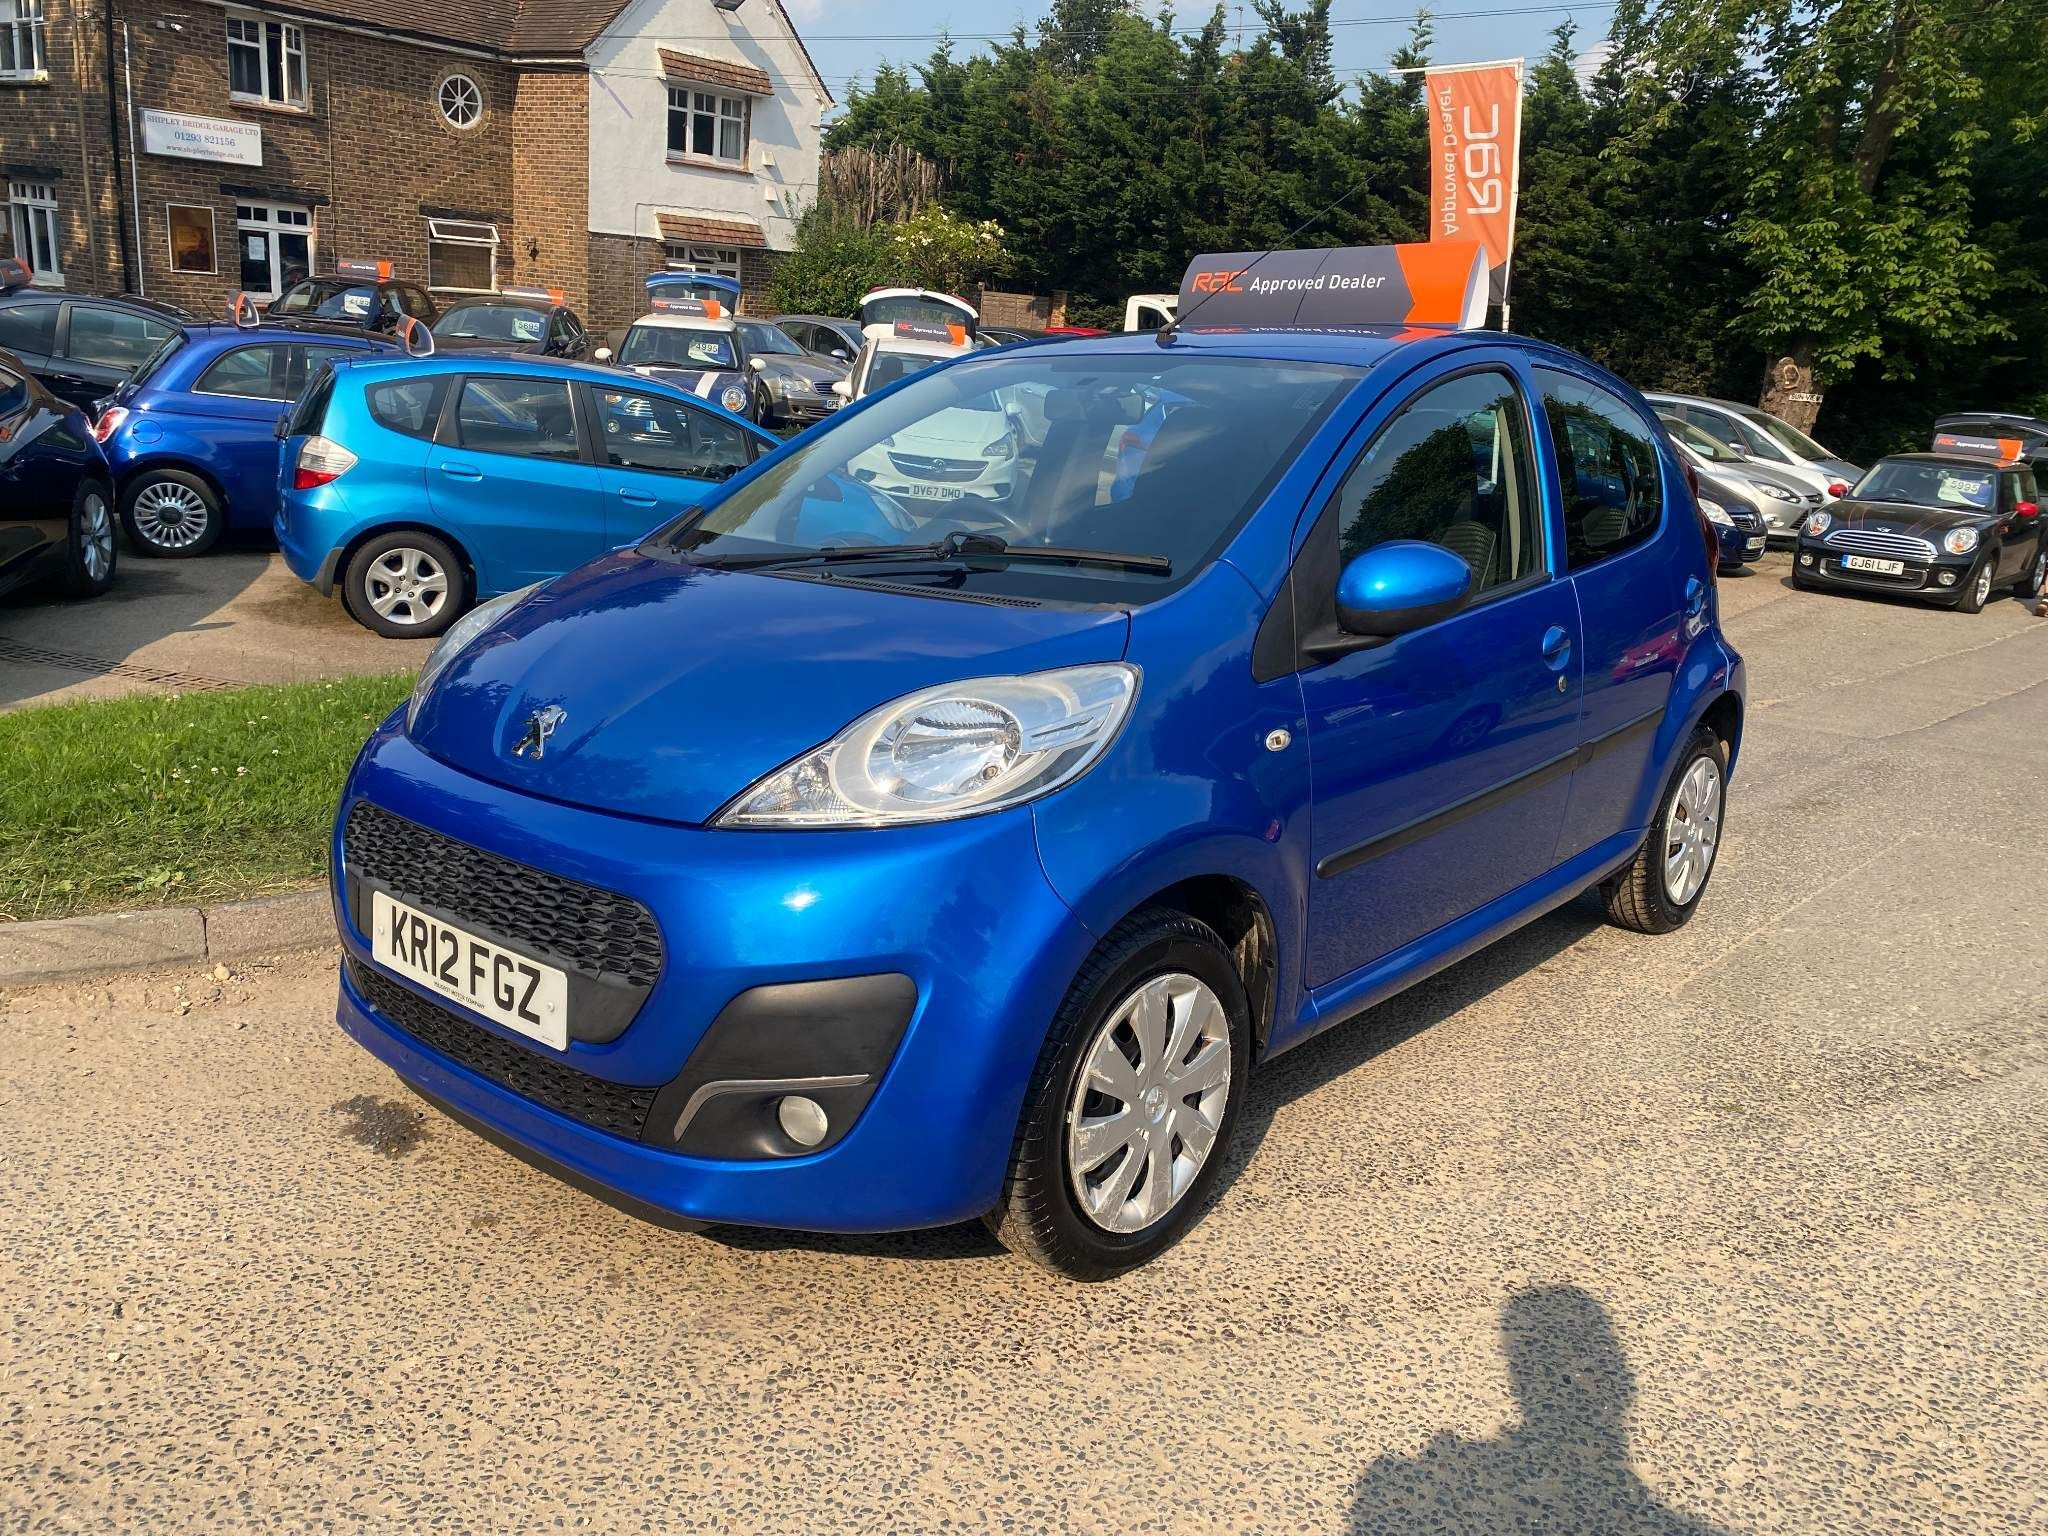 Used Peugeot 107 for sale